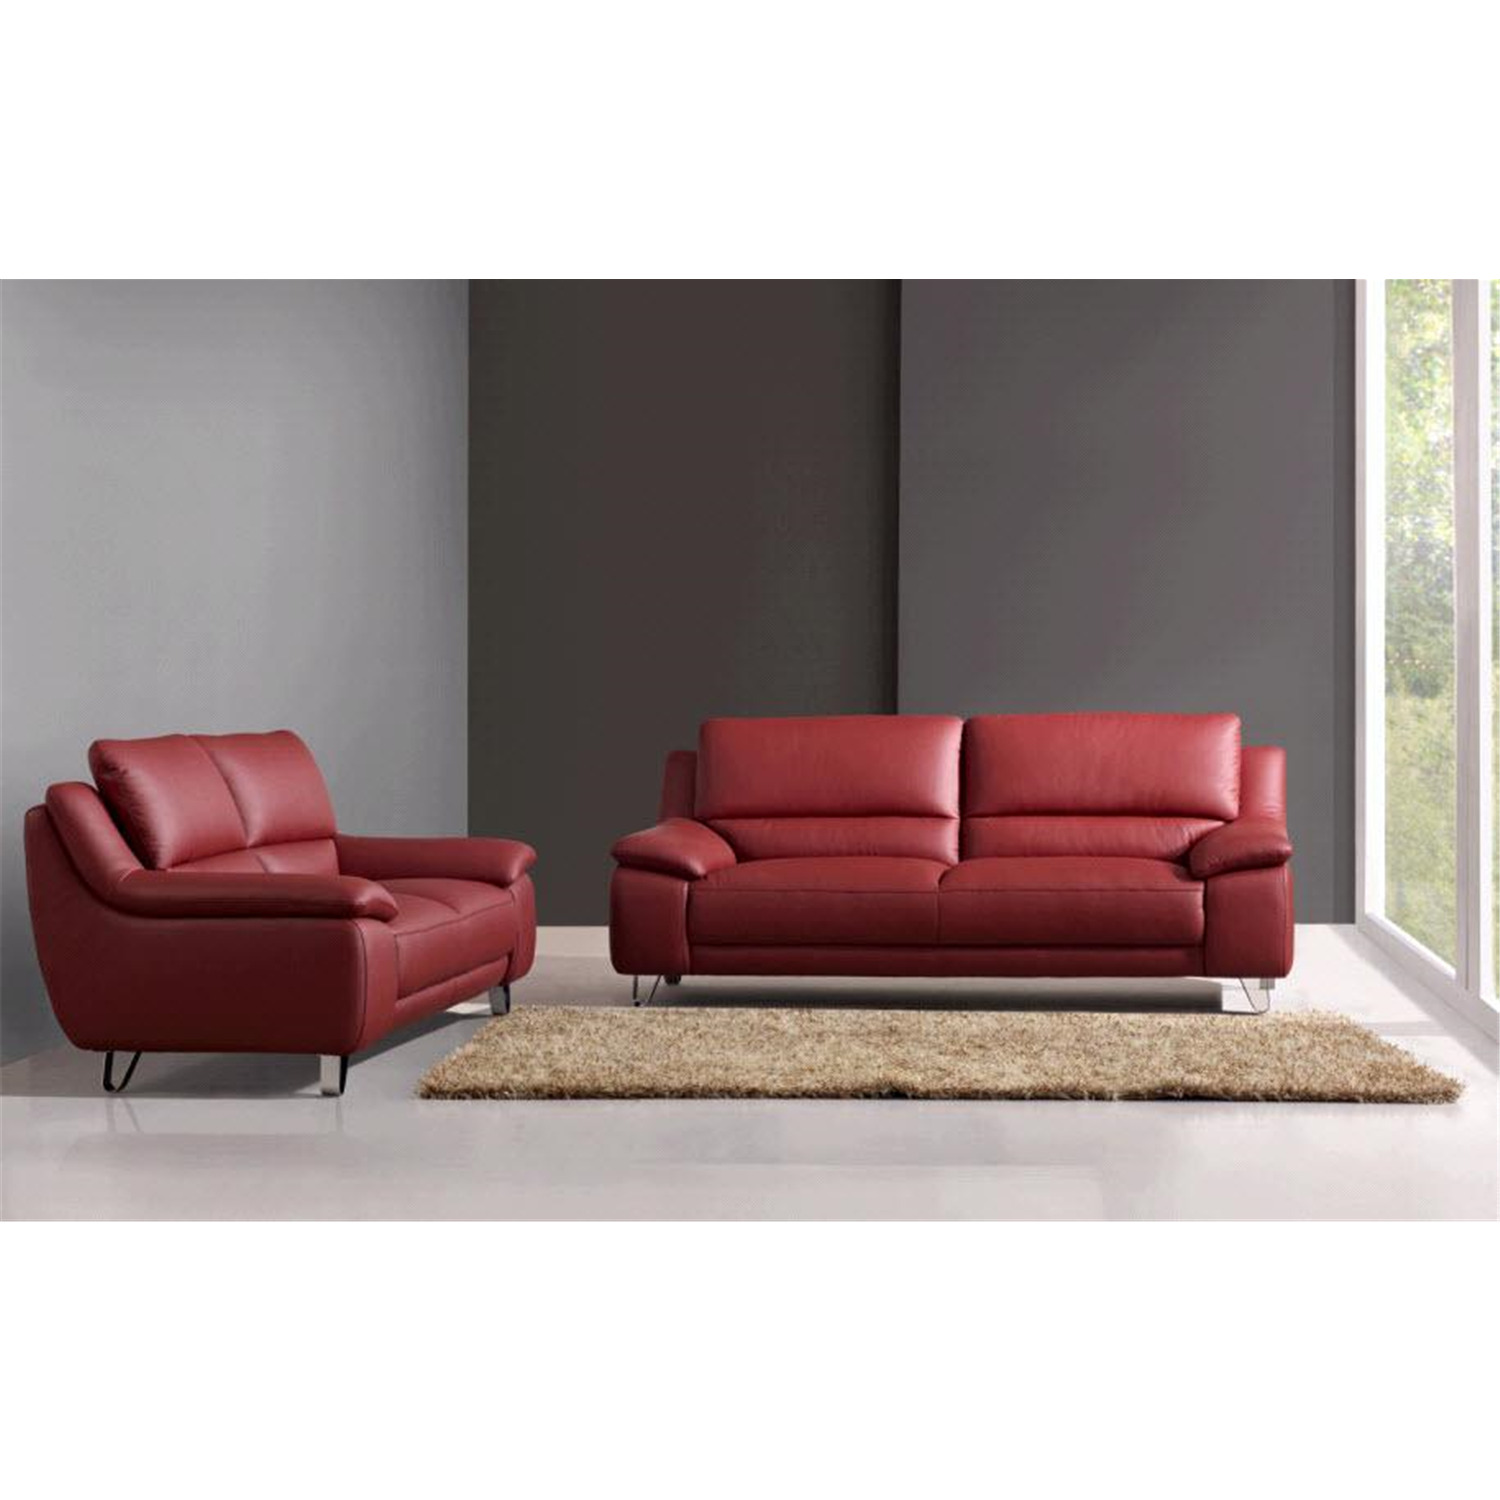 Abbyson living red leather sofa and loveseat by oj commerce abbl48 2 Red sofas and loveseats